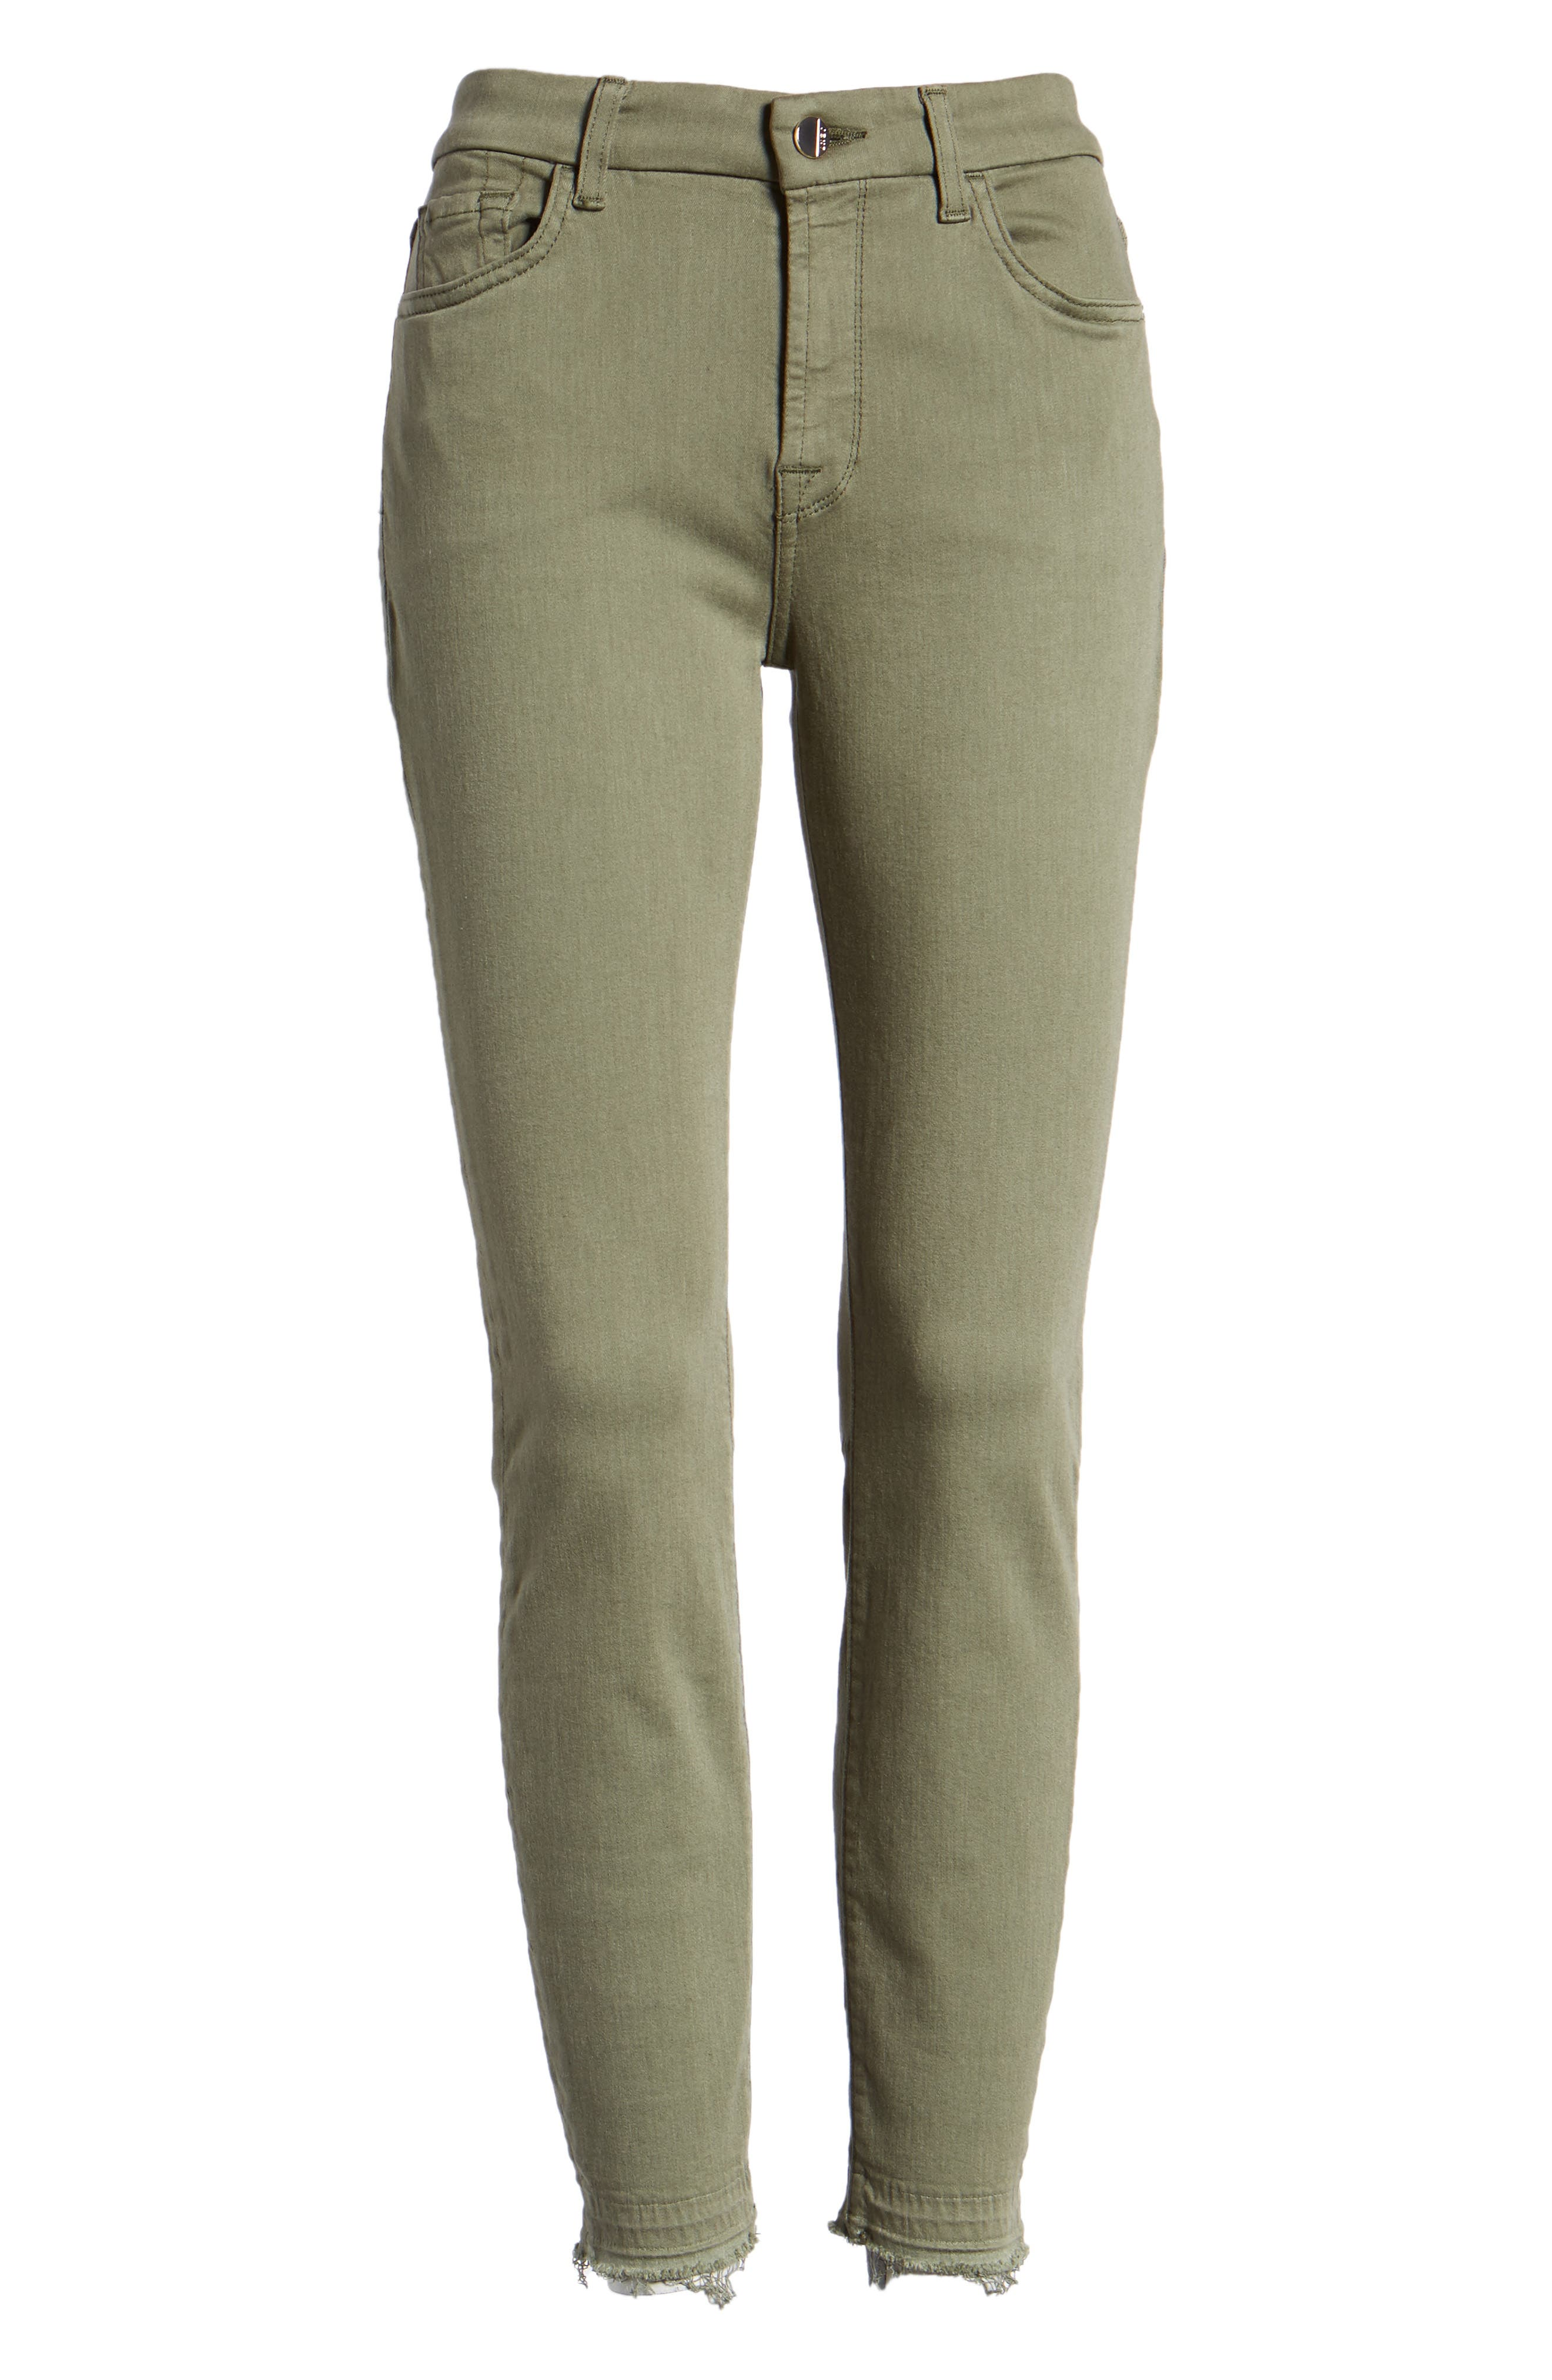 JEN7 BY 7 FOR ALL MANKIND, Release Hem Colored Ankle Skinny Jeans, Alternate thumbnail 7, color, WASHED FATIGUE